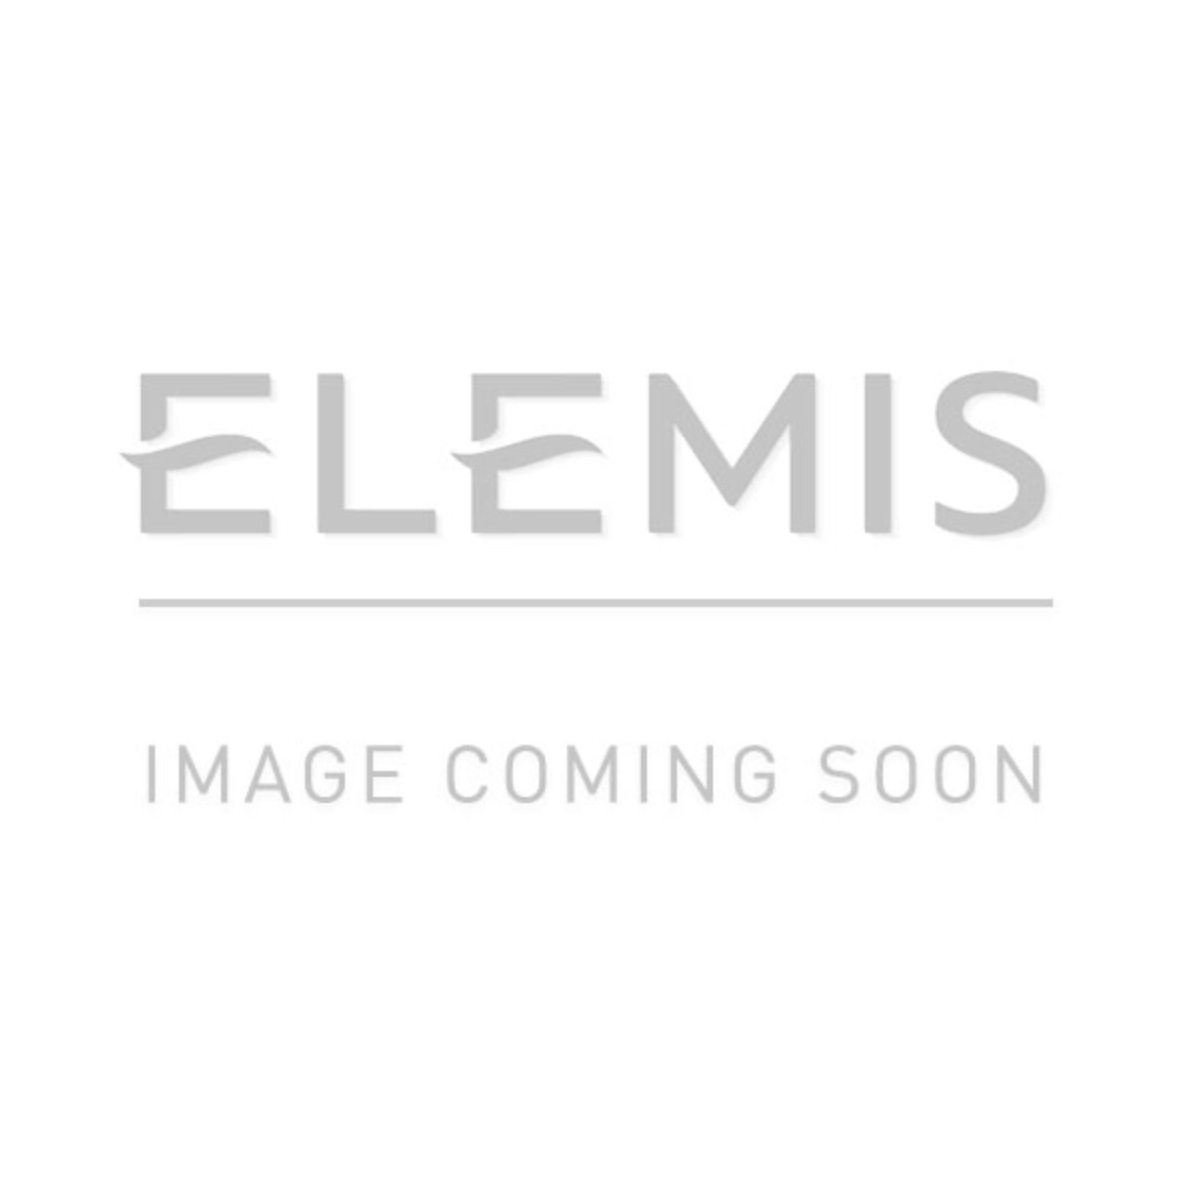 Shop ELEMIS Men's skincare products online: face wash, eye creams, moisturisers and grooming kits for men ☆ Free samples with all orders.